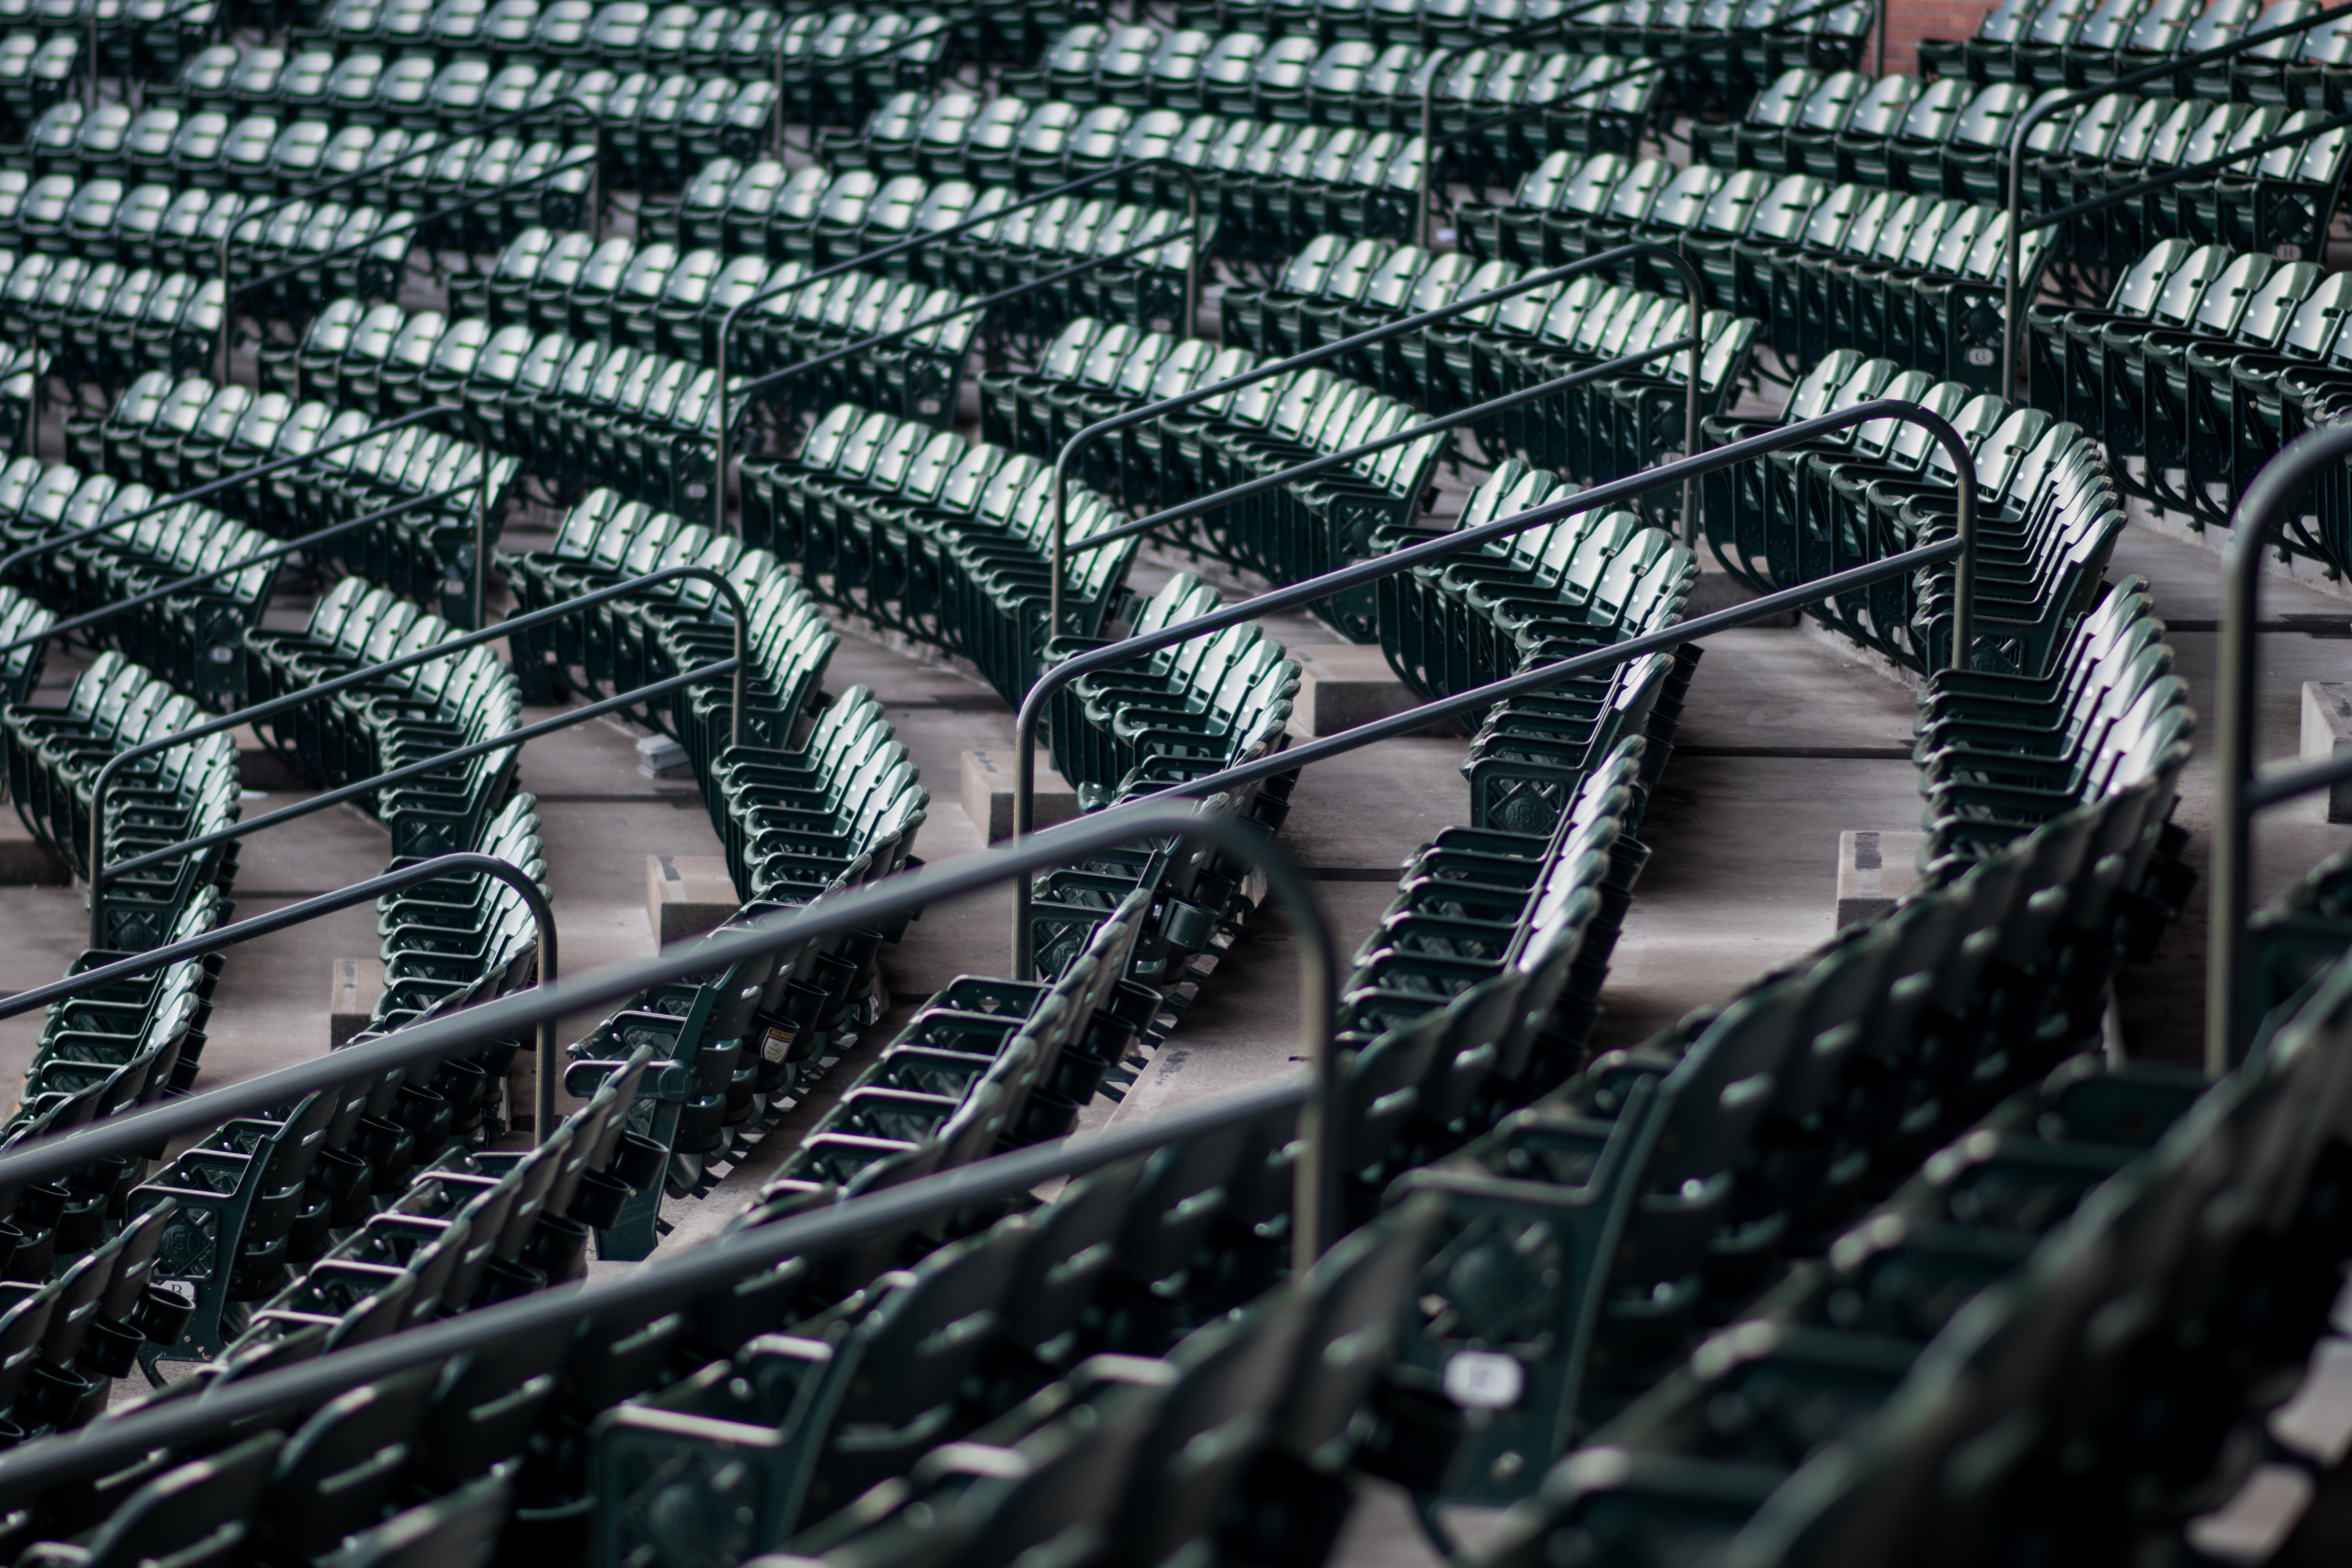 Set of seats in a stadium arranged with railing